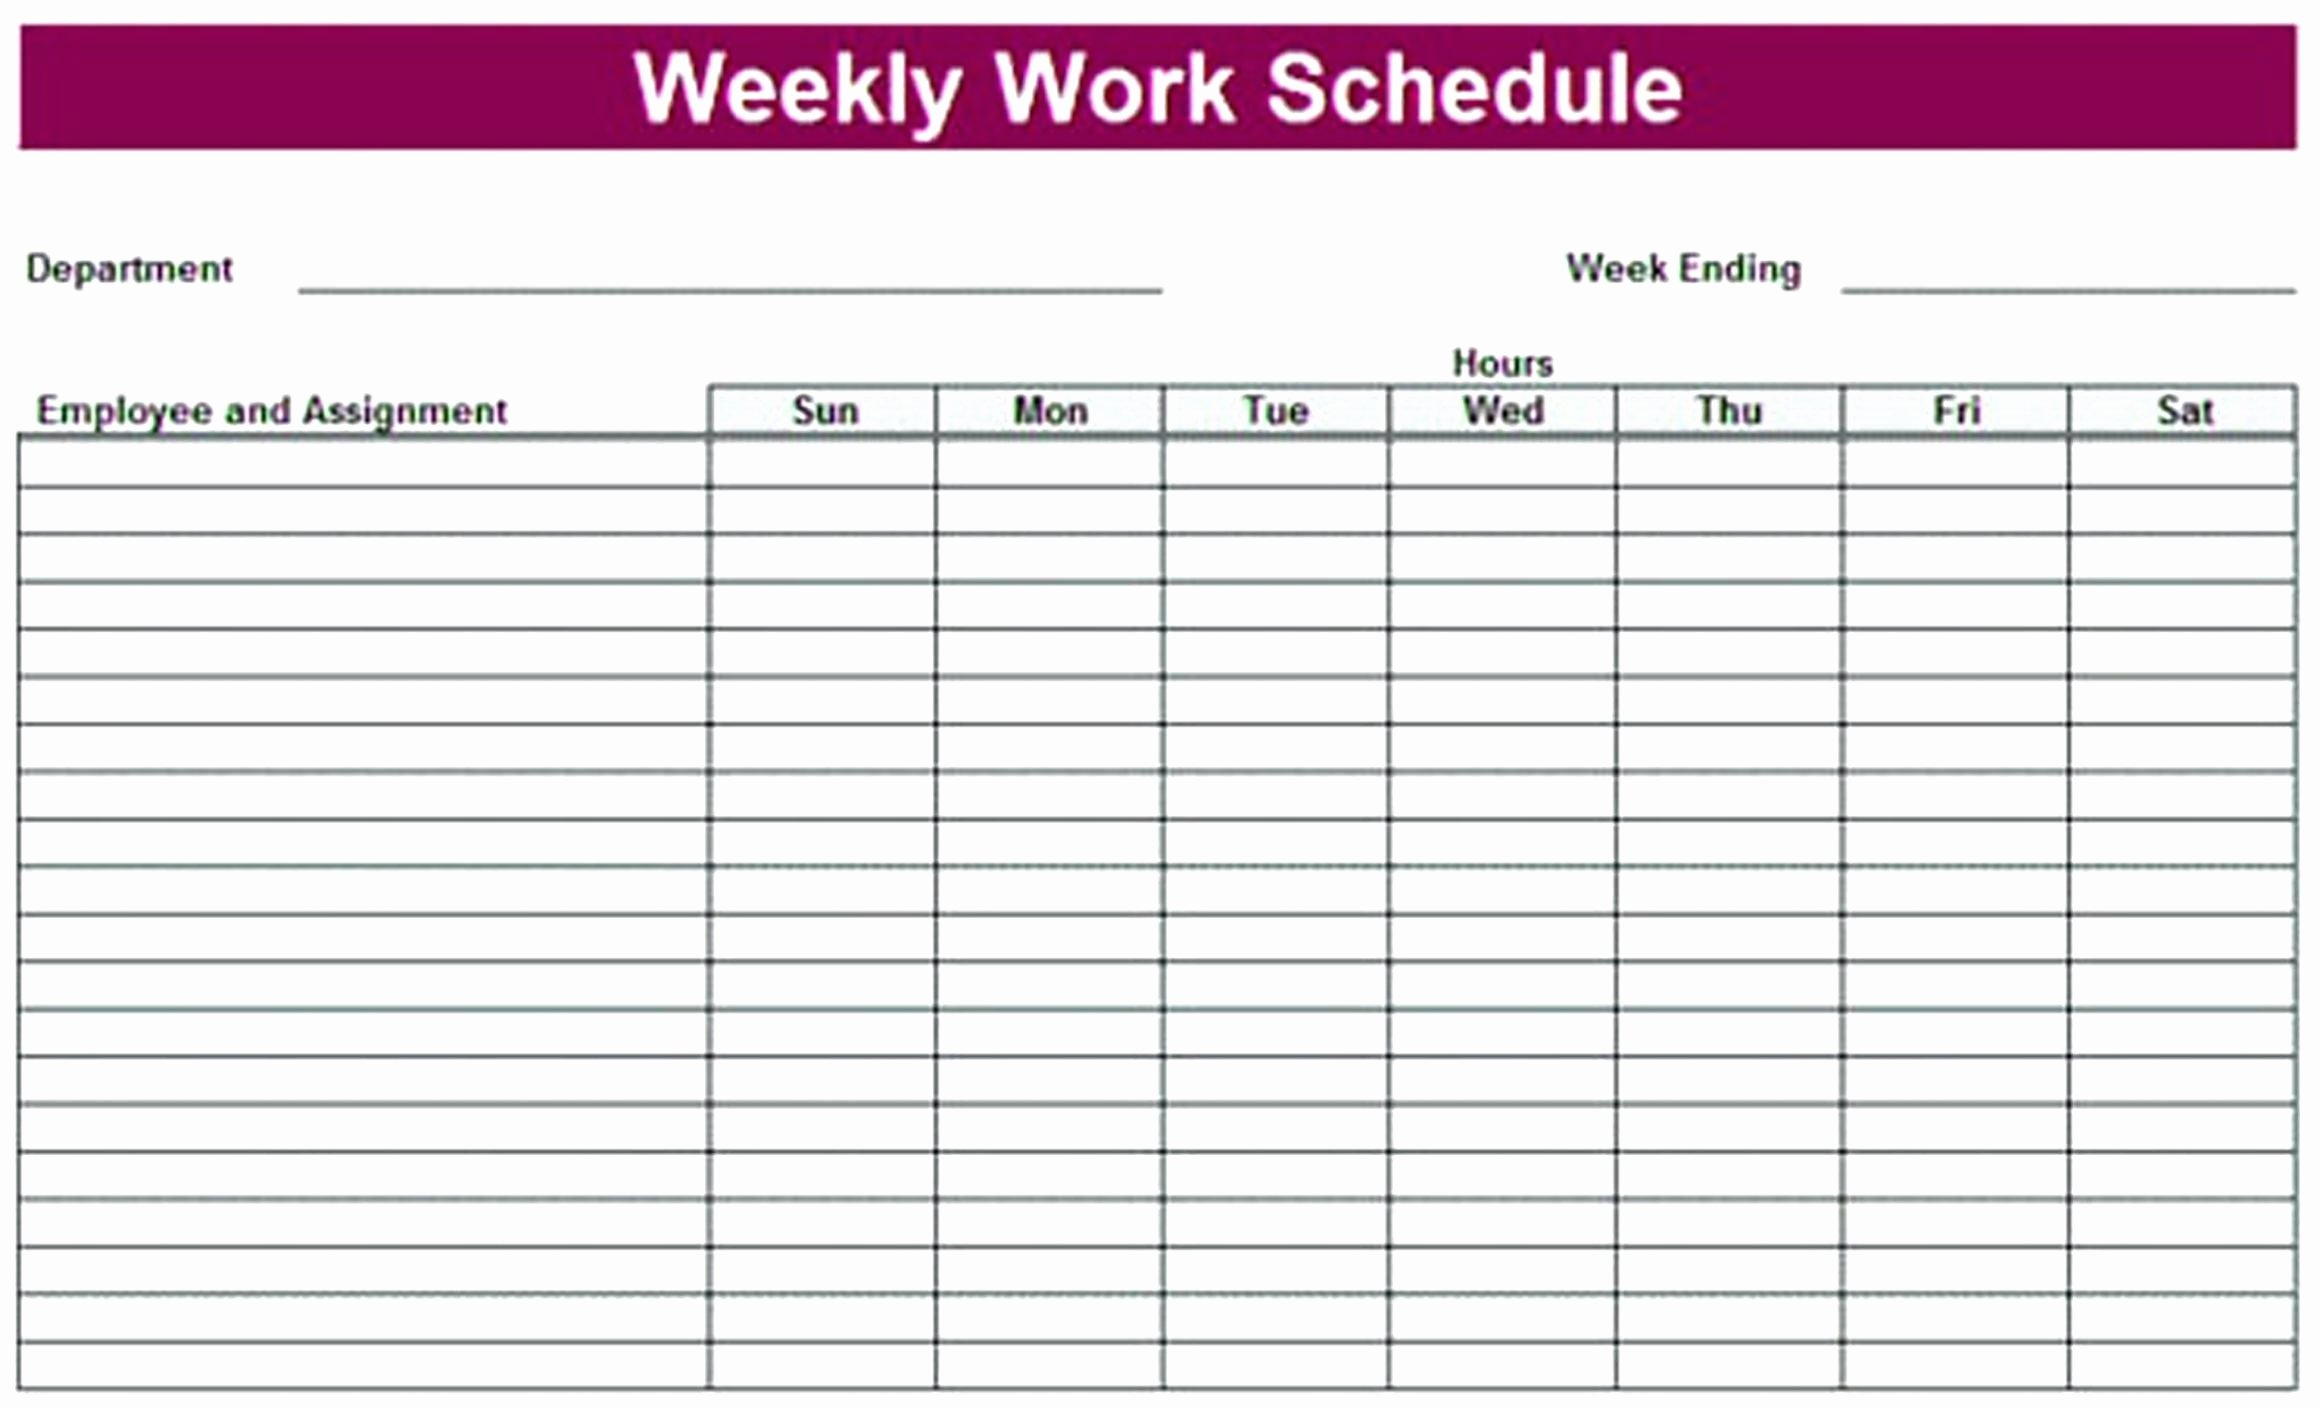 24 Hour Weekly Schedule Template Luxury Printable 24 Hour Weekly Schedule Printable